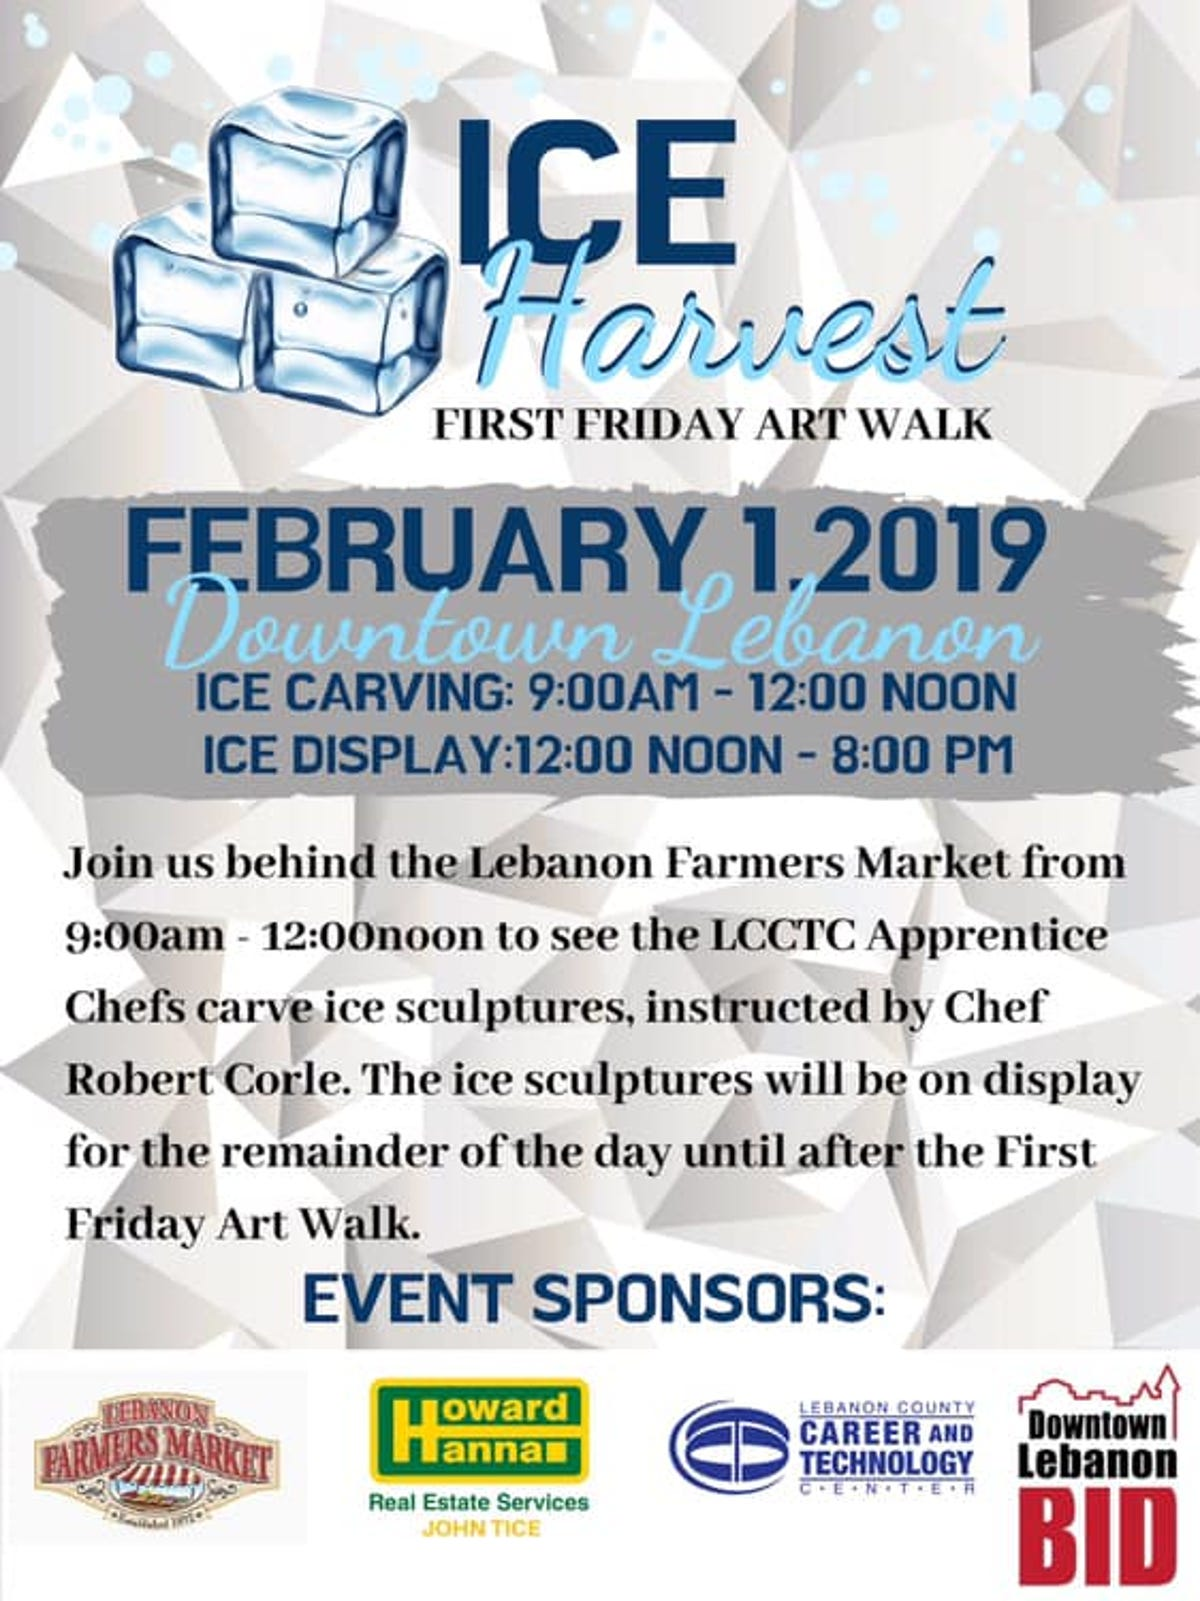 Ice sculpting coming to downtown Lebanon this Friday